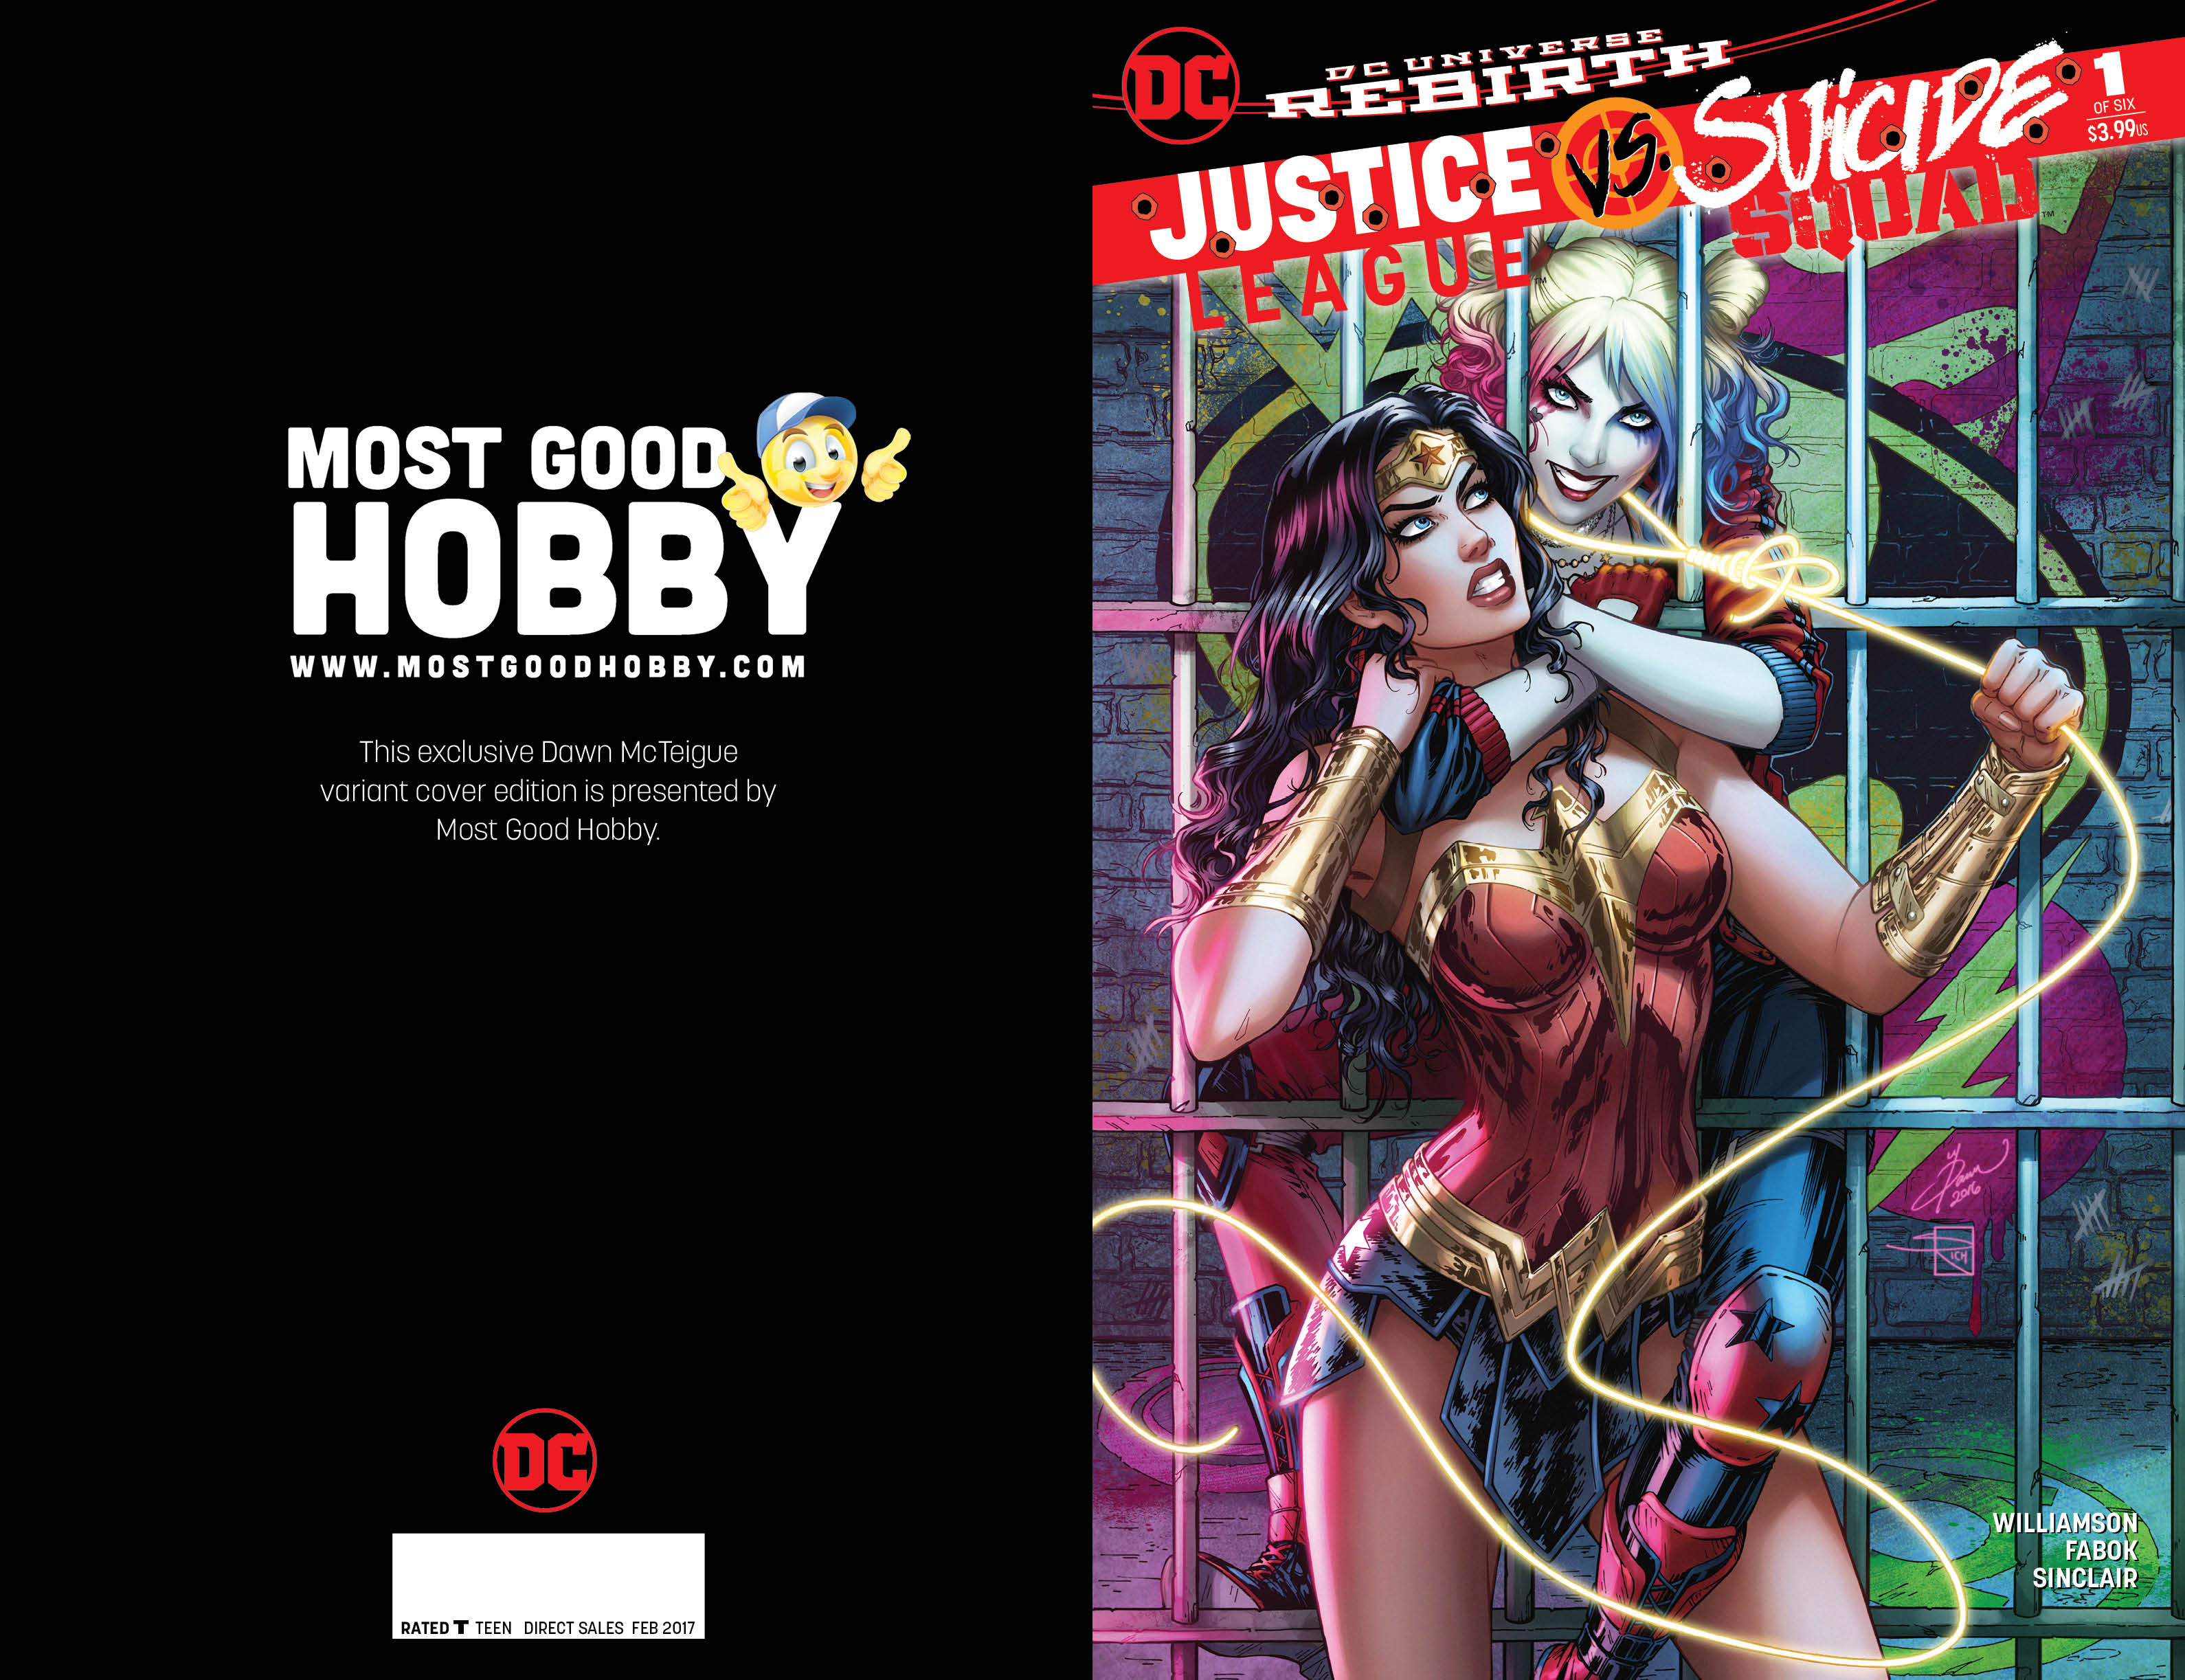 Justice League vs Suicide Squad #1 (Of 6) Most Good Exclusive Dawn McTeigue Variant